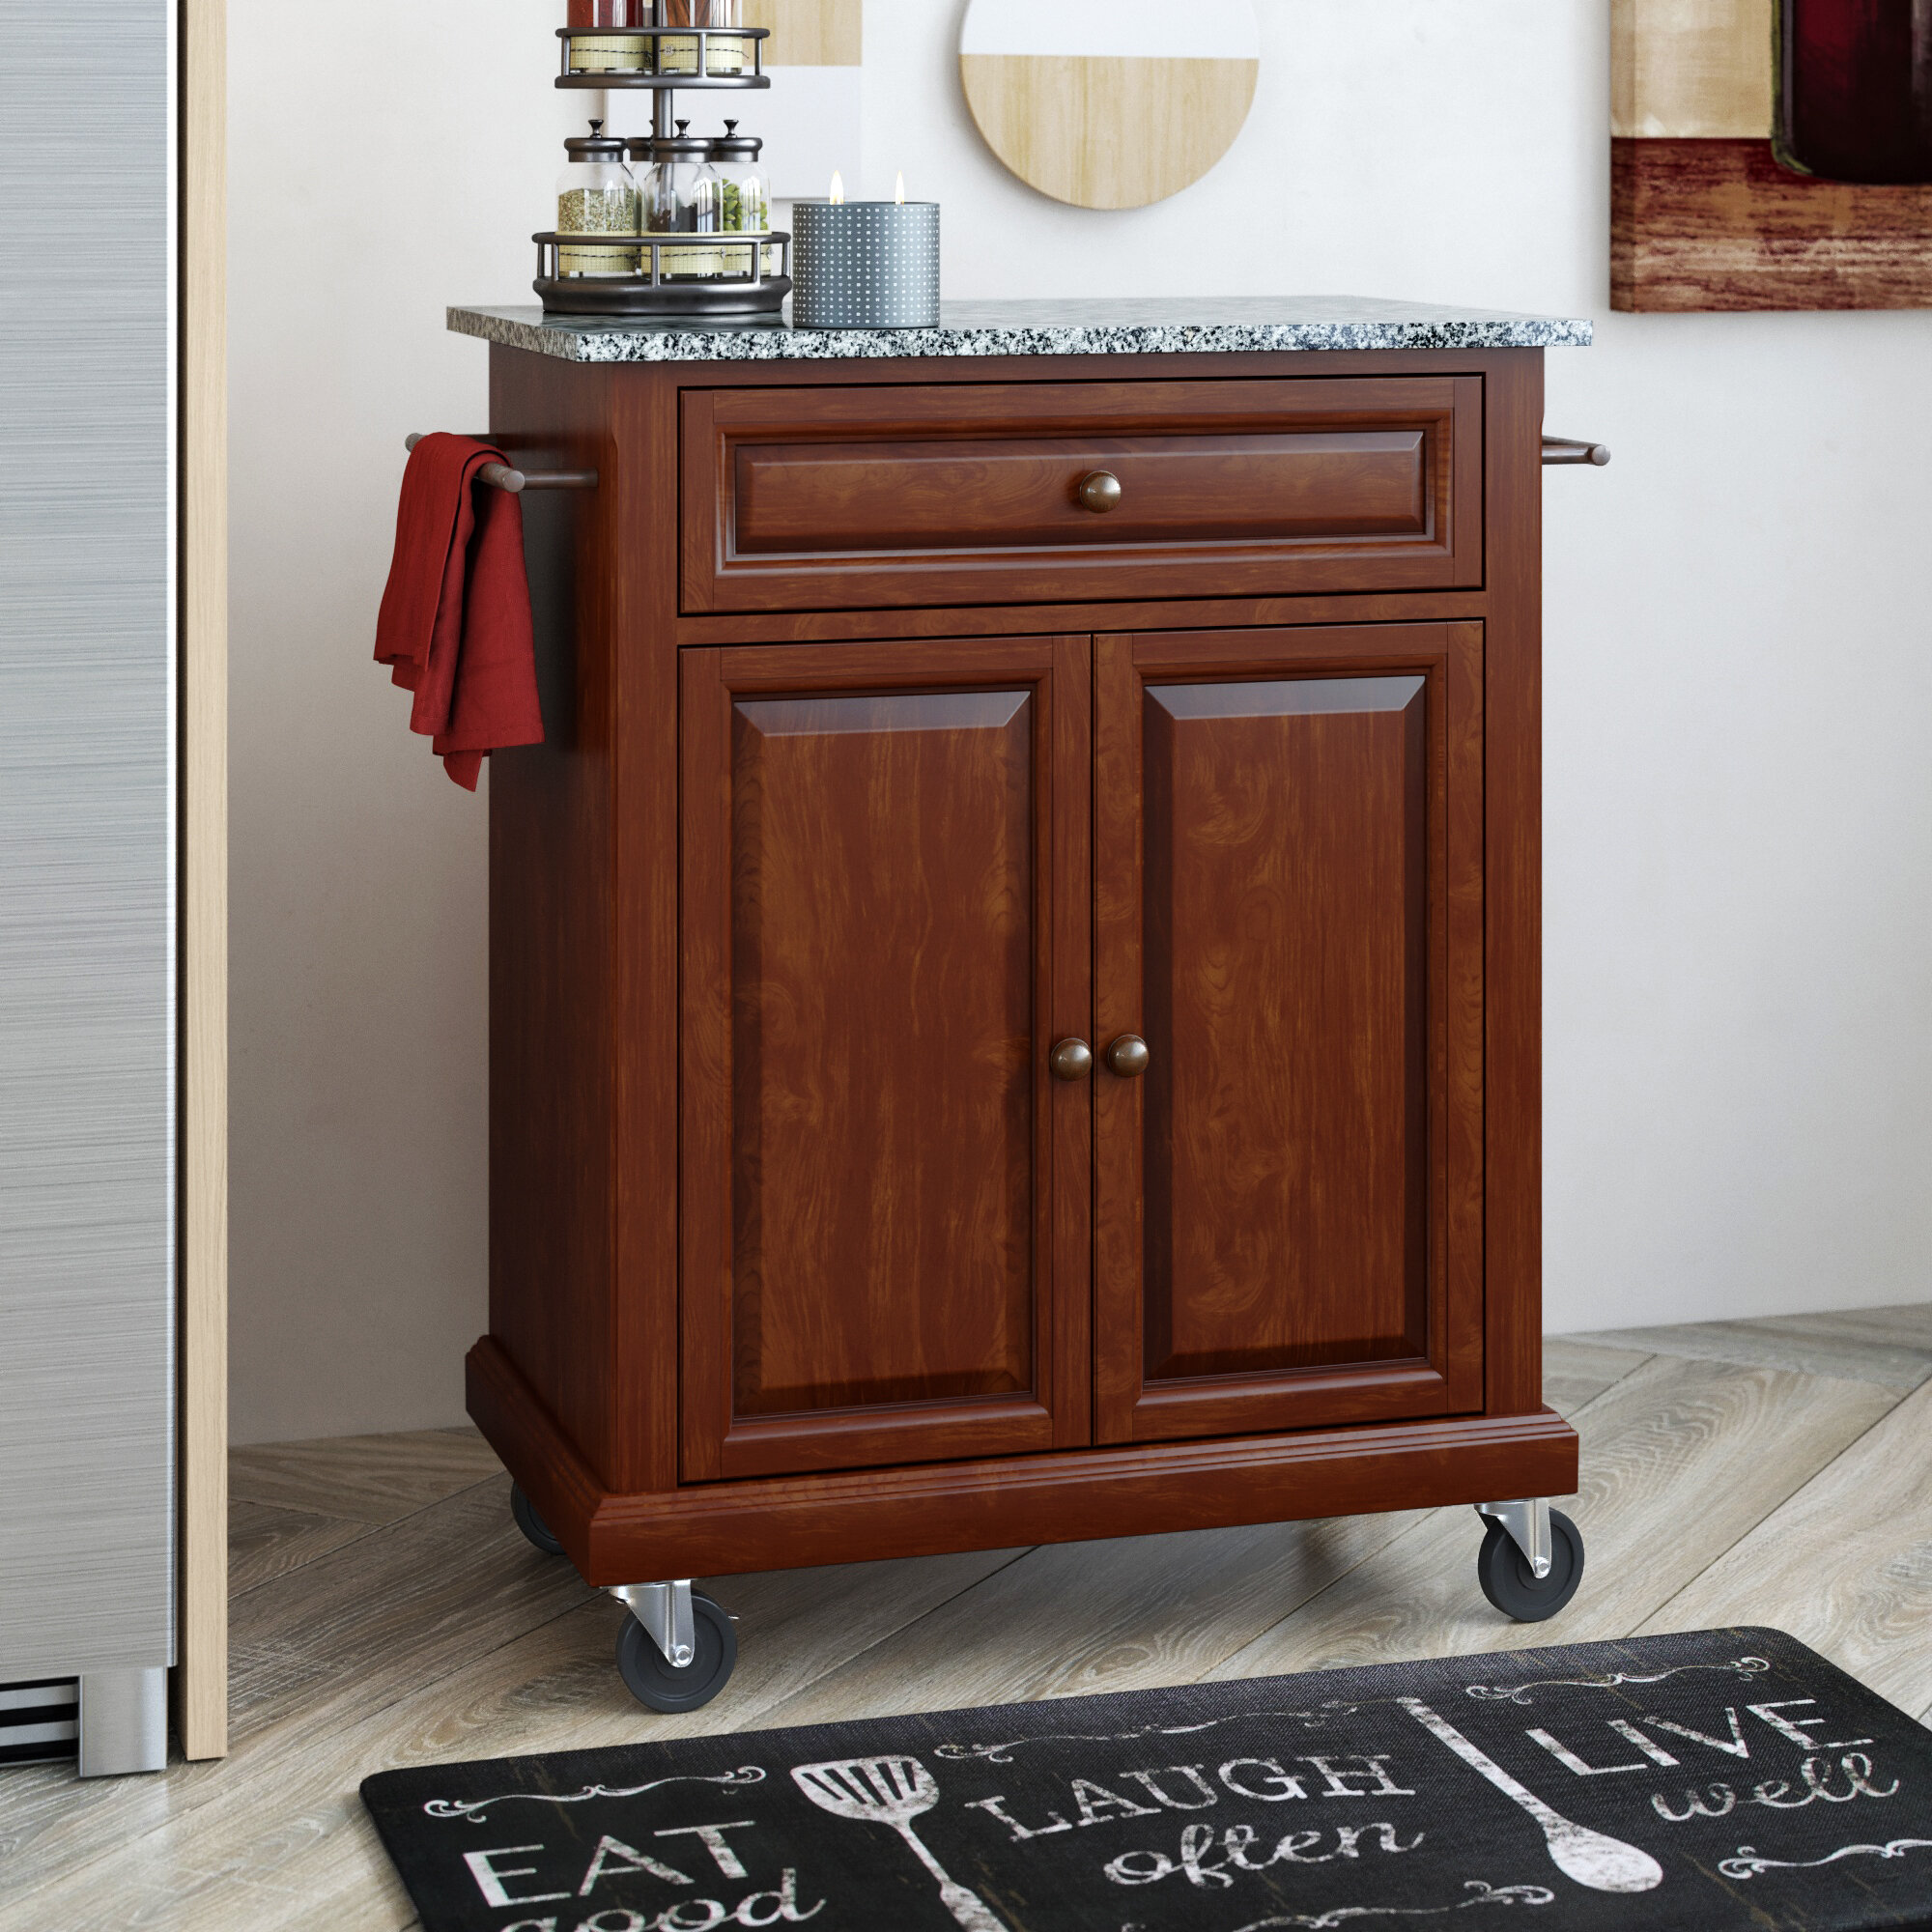 Charmant Three Posts Hedon Portable Kitchen Cart With Granite Top U0026 Reviews | Wayfair